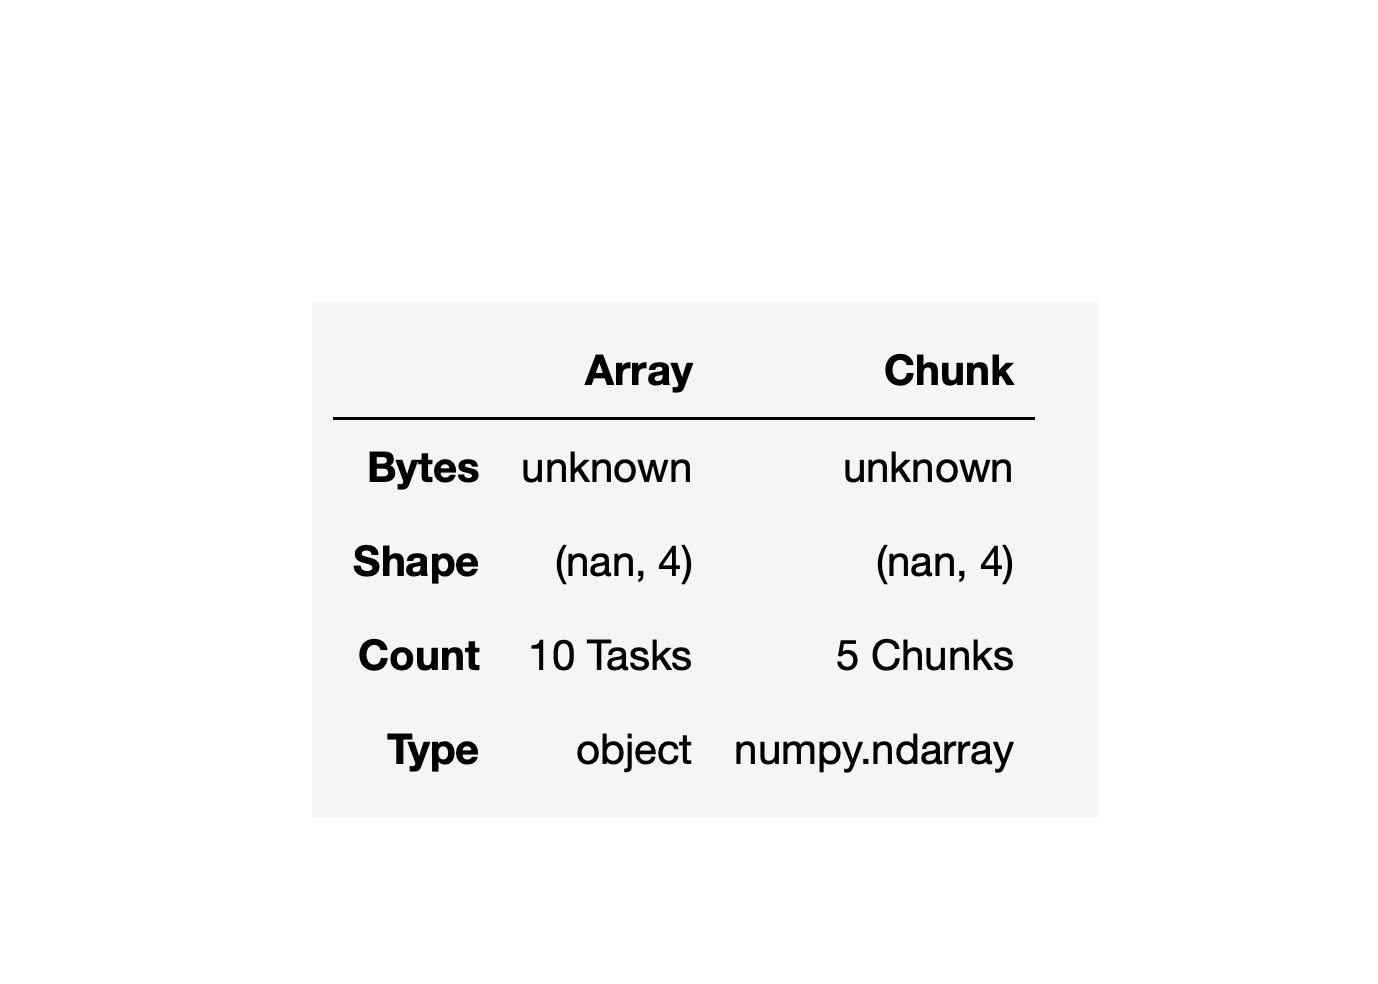 A table showing chunk and array as columns and bytes, shape, count, and type as rows.